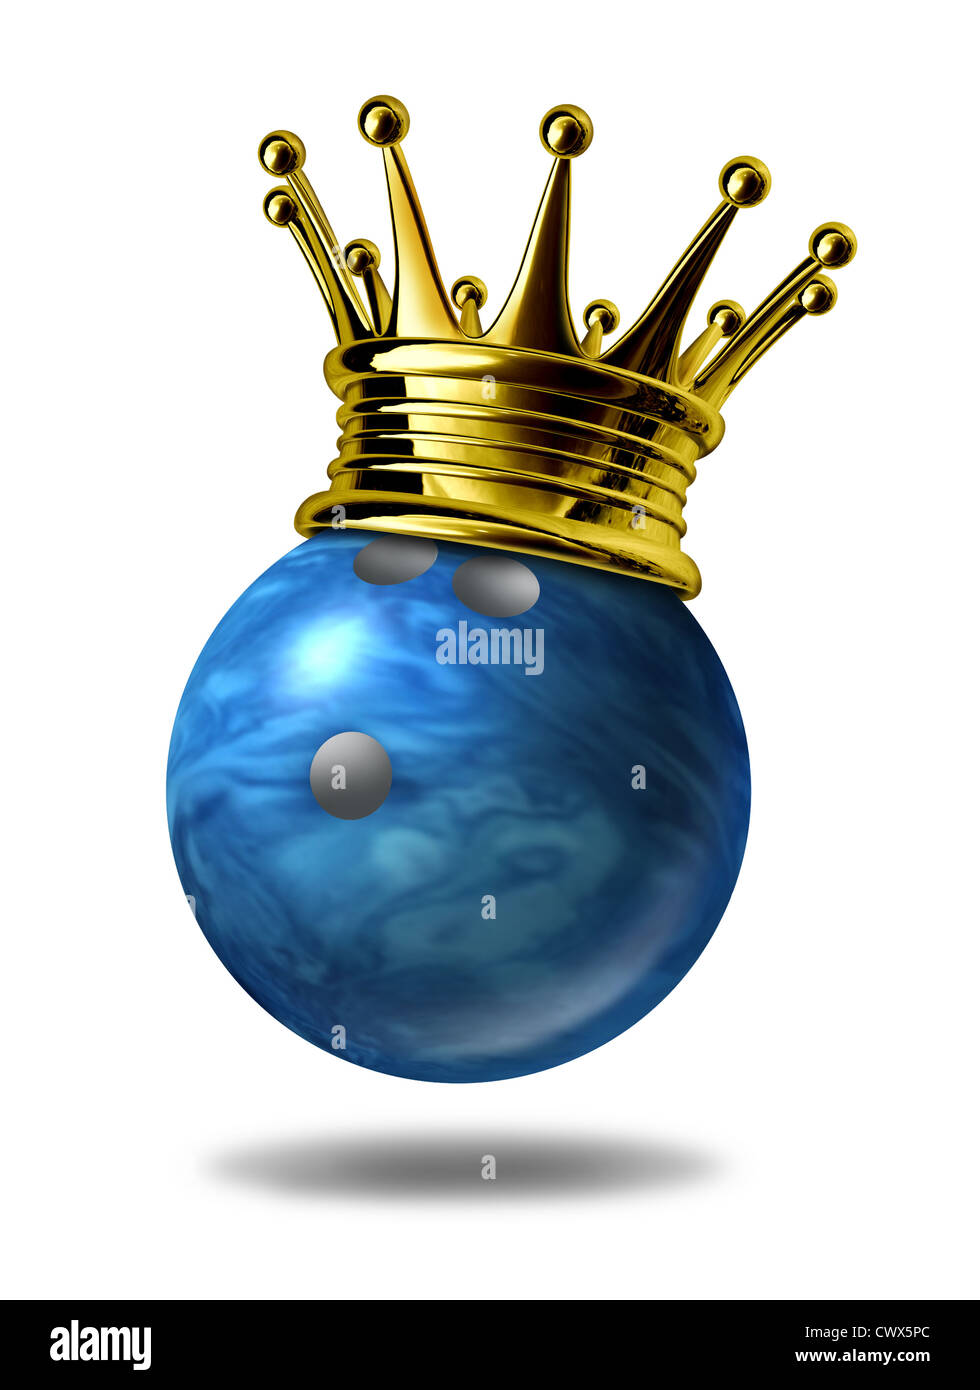 Bowling king champion symbol represented by a golden crown